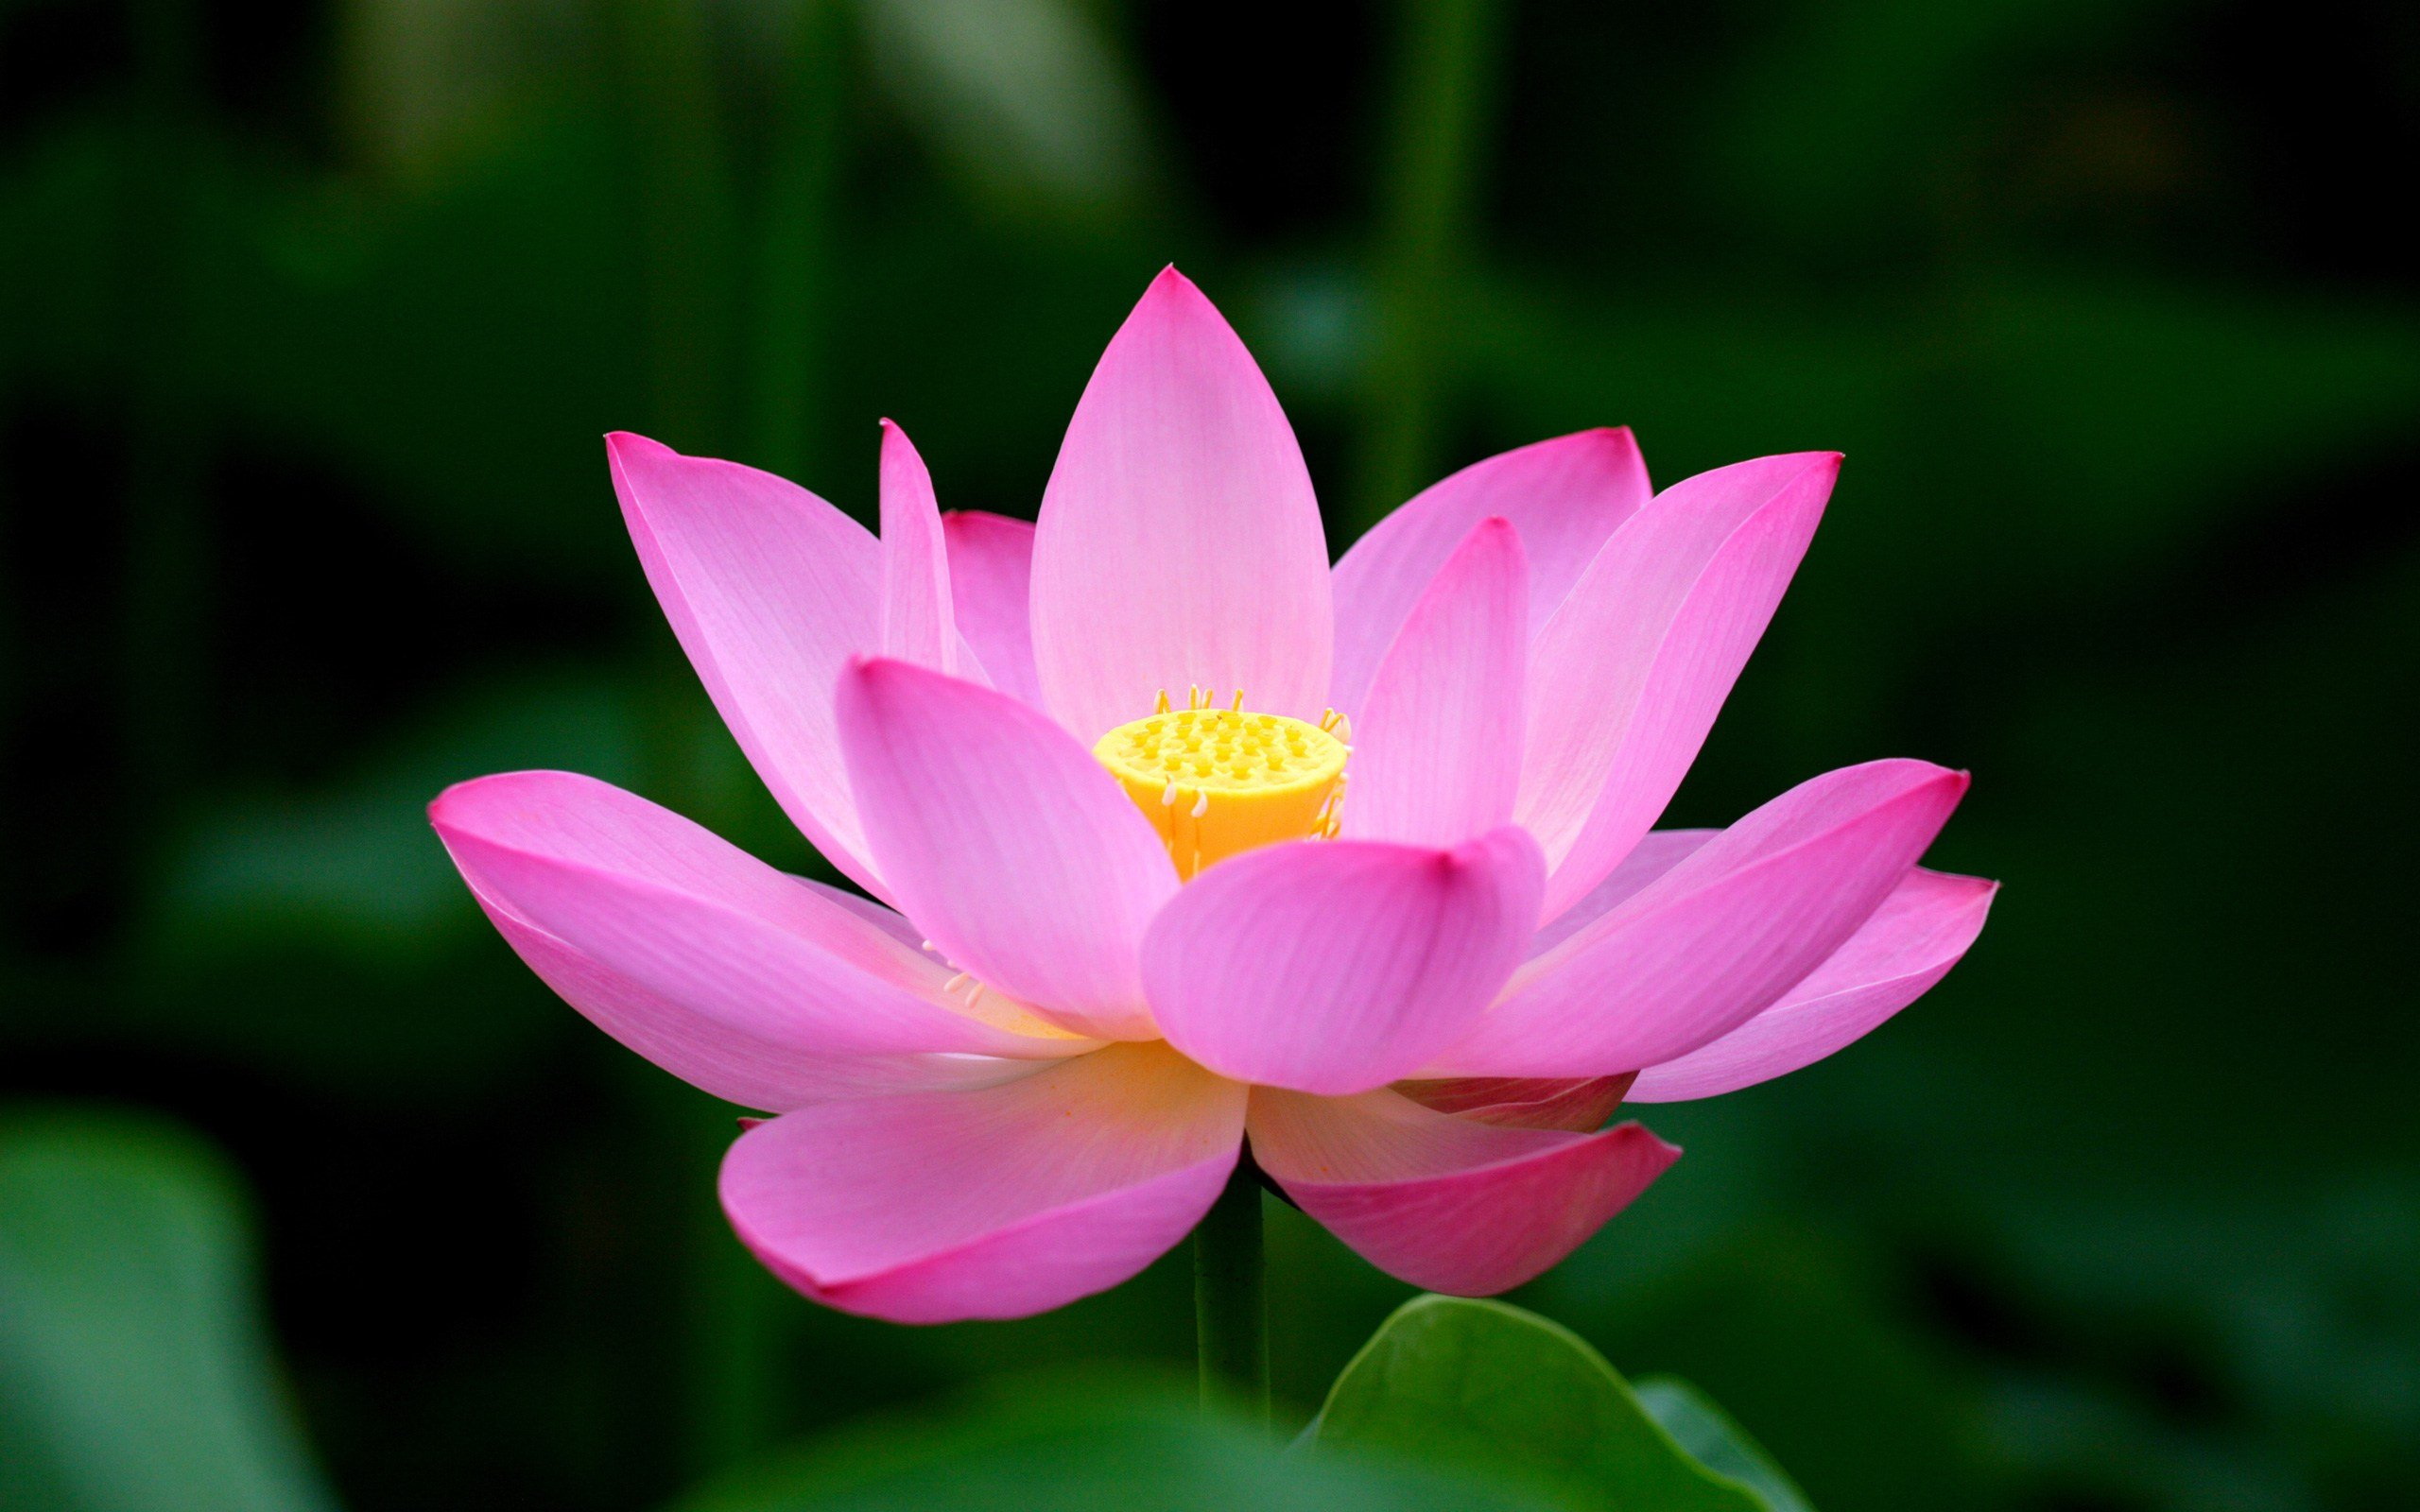 Lotus flower images savingourboysfo lotus flower meaning and symbolism mythologian beautiful flower mightylinksfo